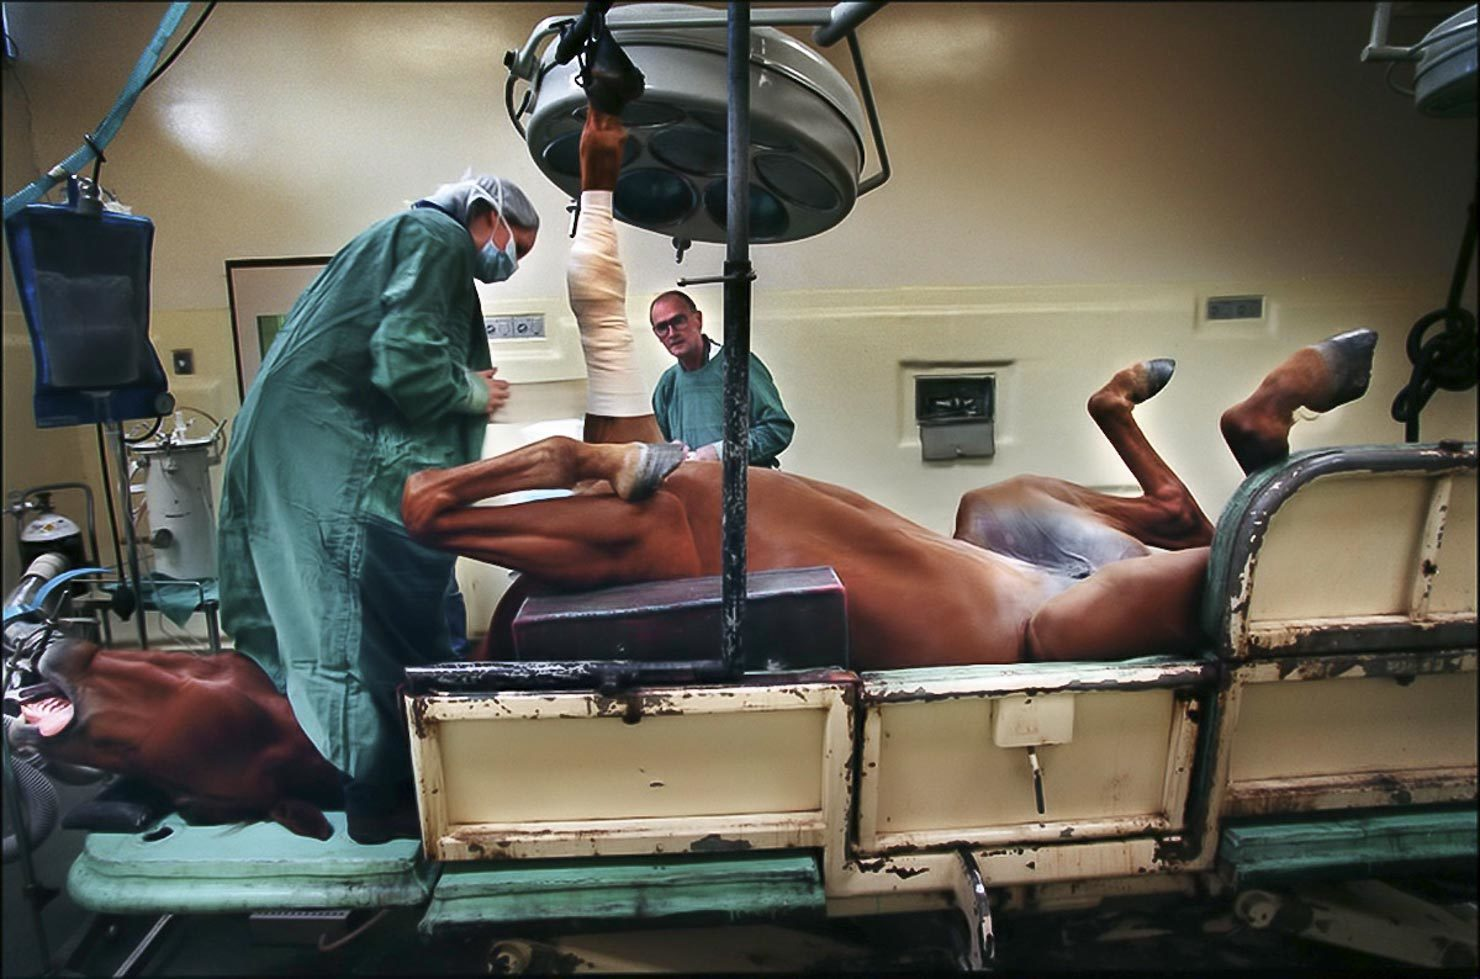 Veterinarian performs an operation on a horse